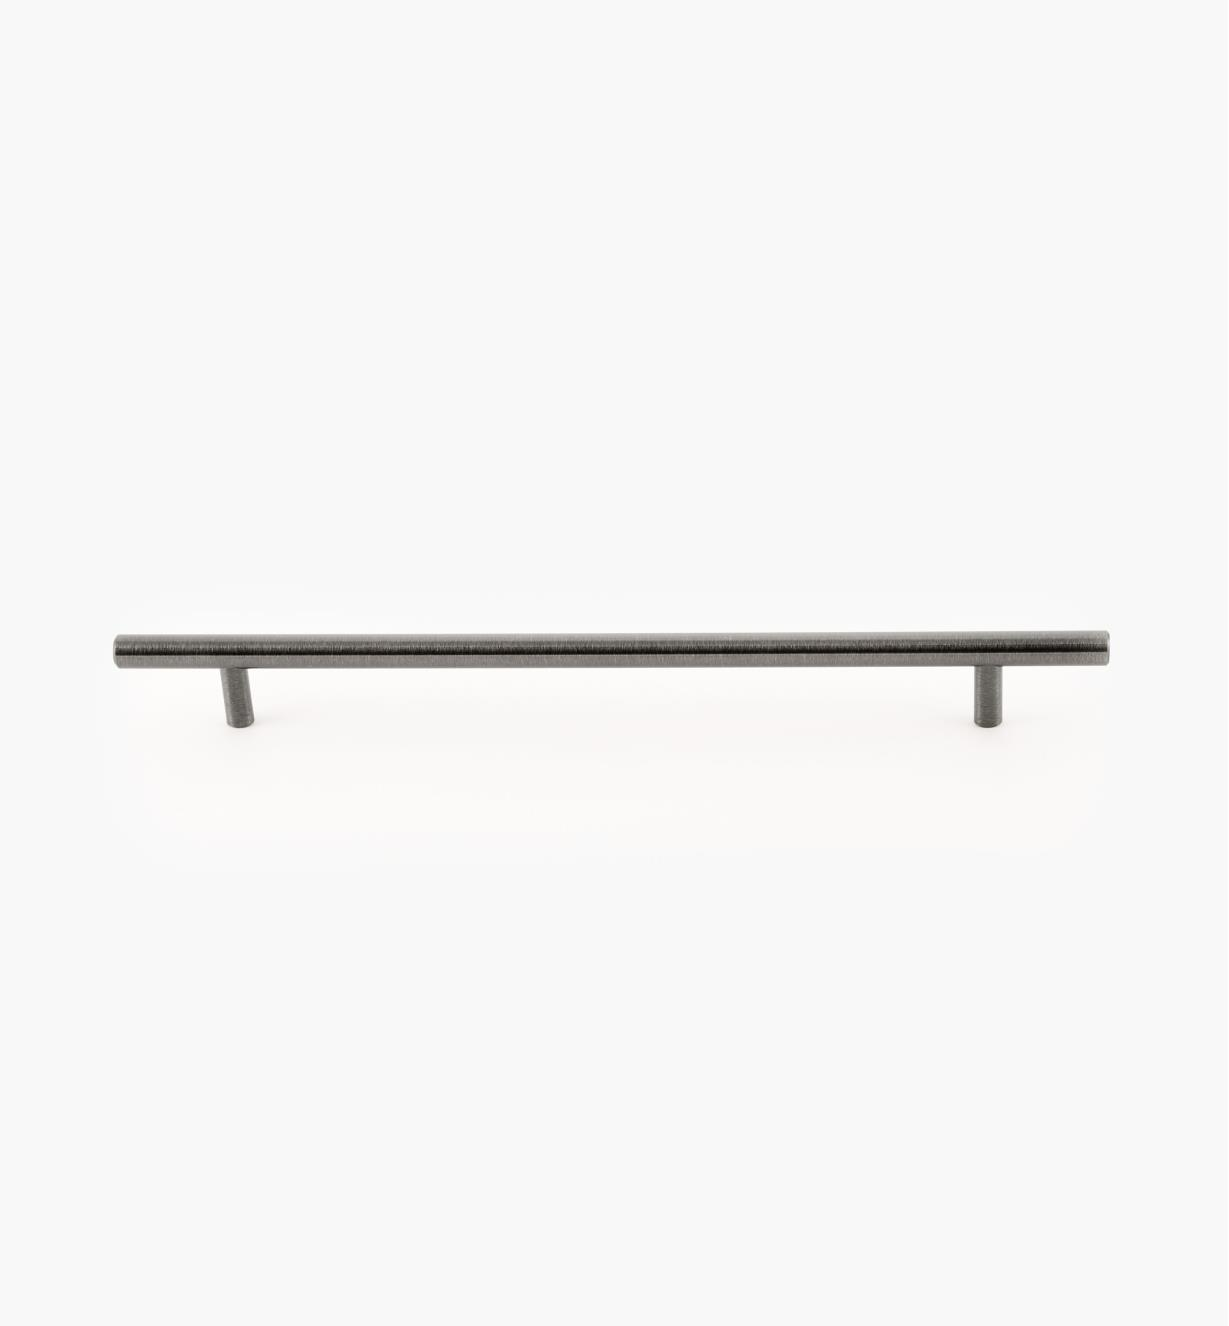 02A1484 - Bar Gunmetal 256mm (337mm) Pull, each